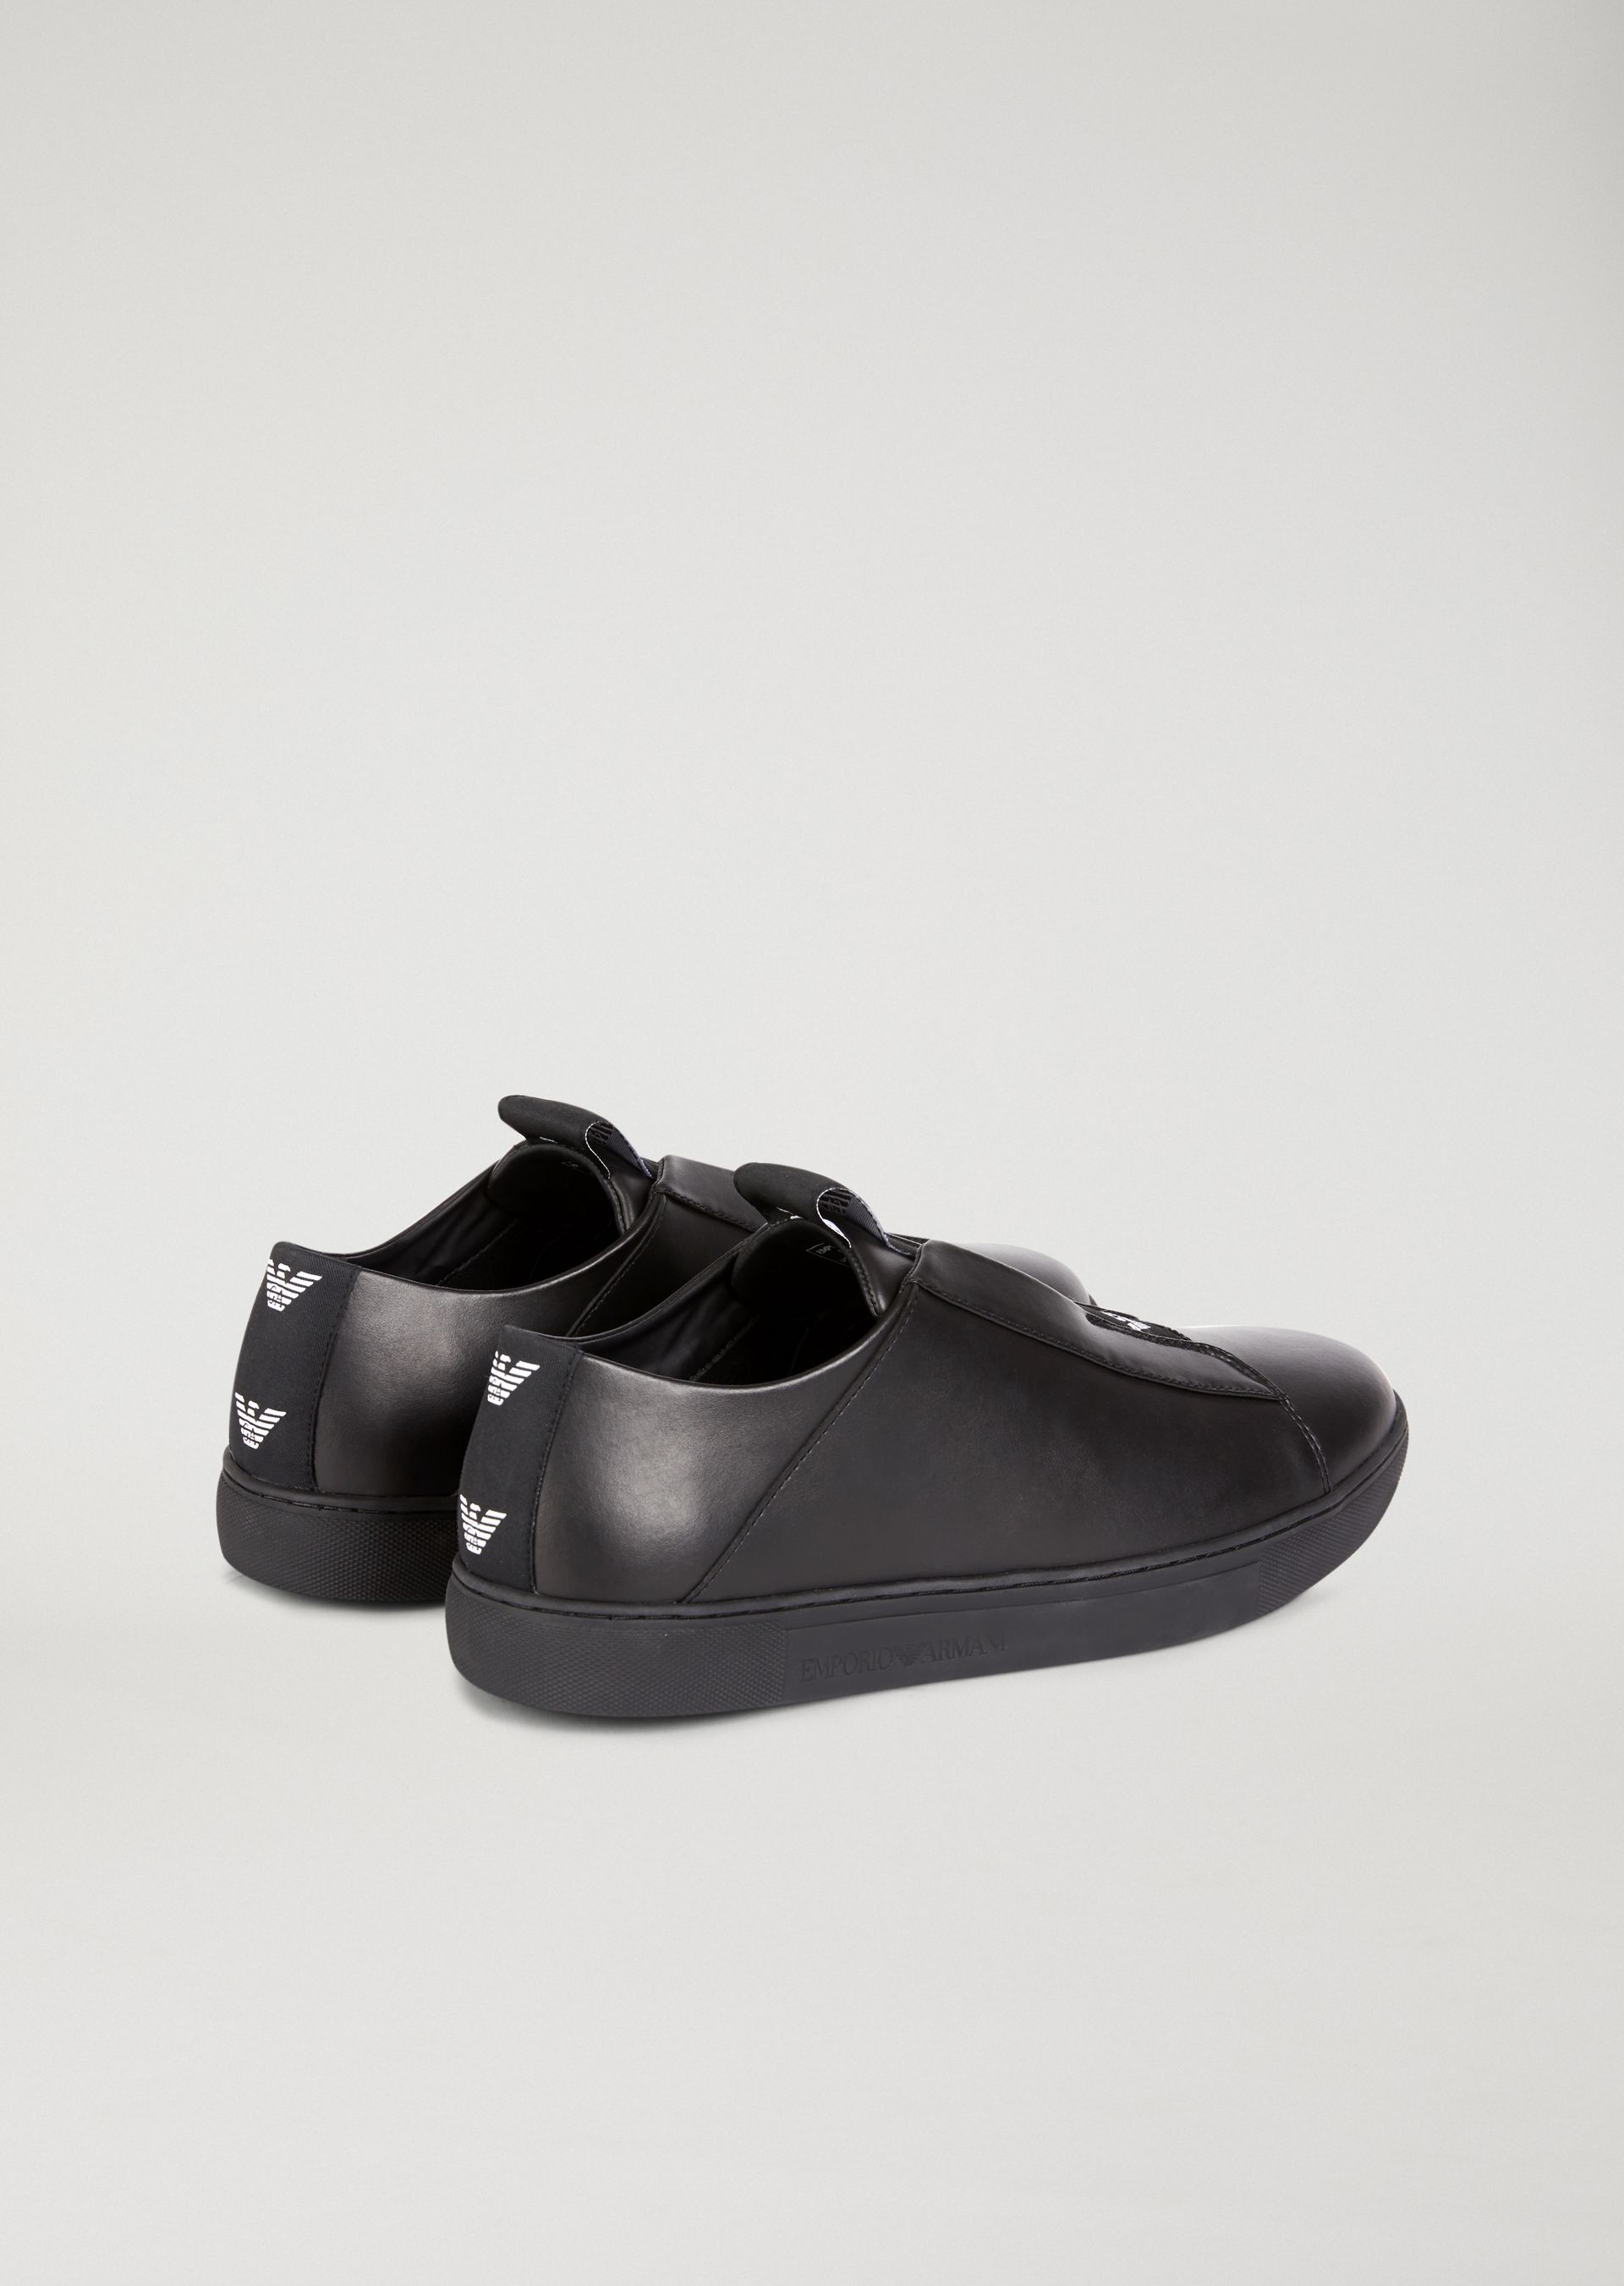 6c96cc7ab Emporio Armani Slip-On Sneakers In Nappa Leather With Contrasting Logo -  Midnight Blue 10.5